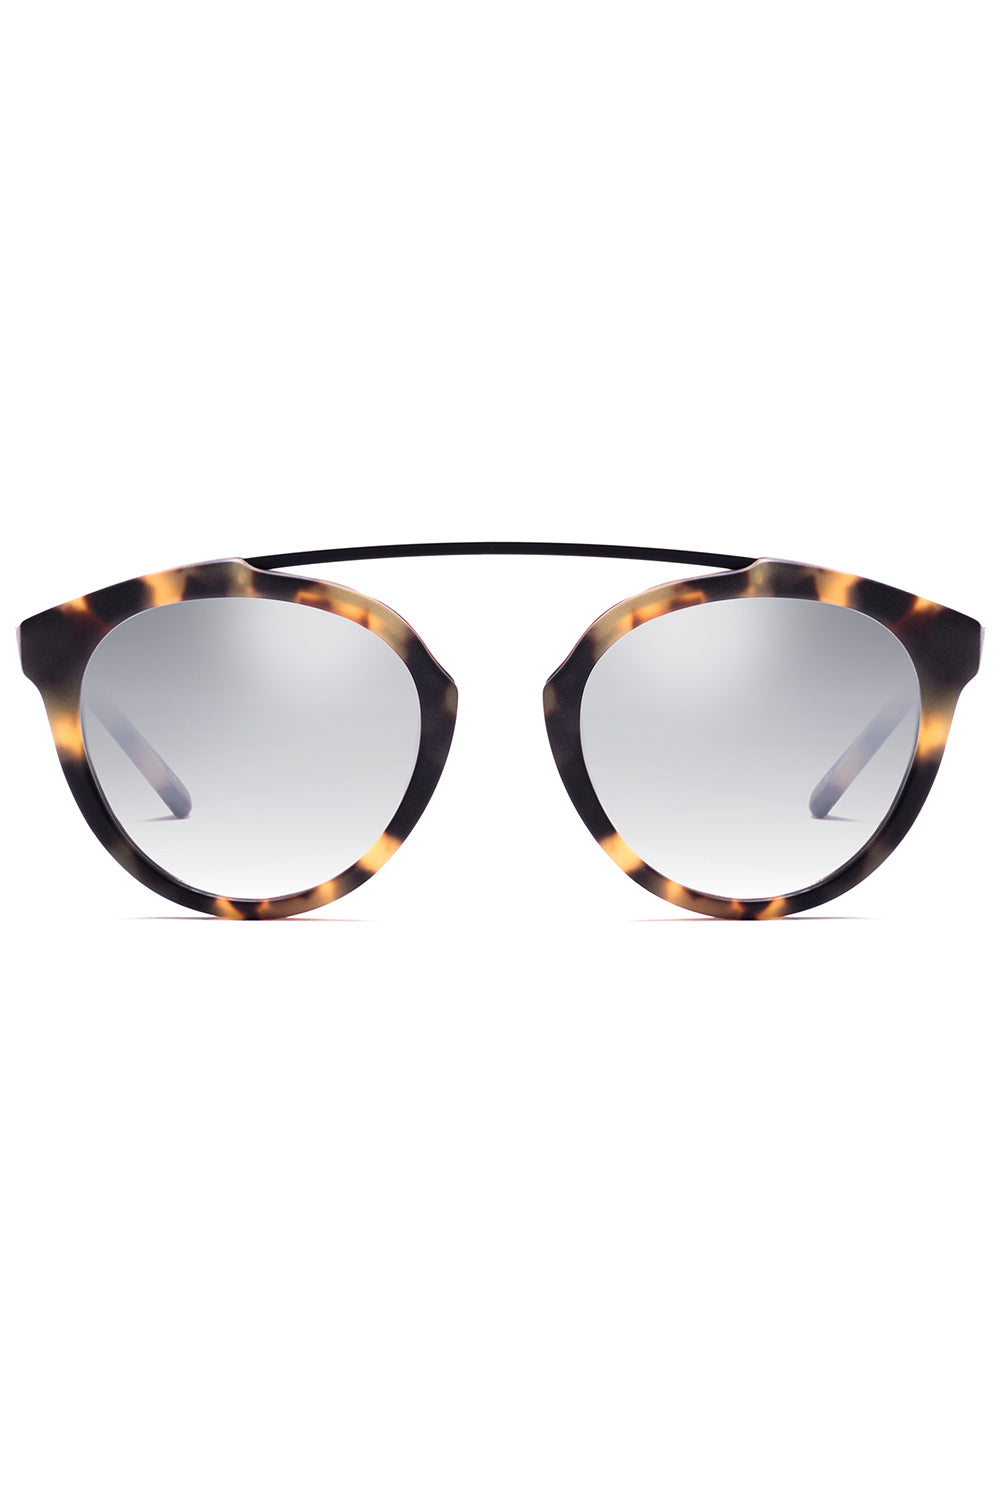 Flower 32 Sunglasses in Matte Sand Tortoise Acetate